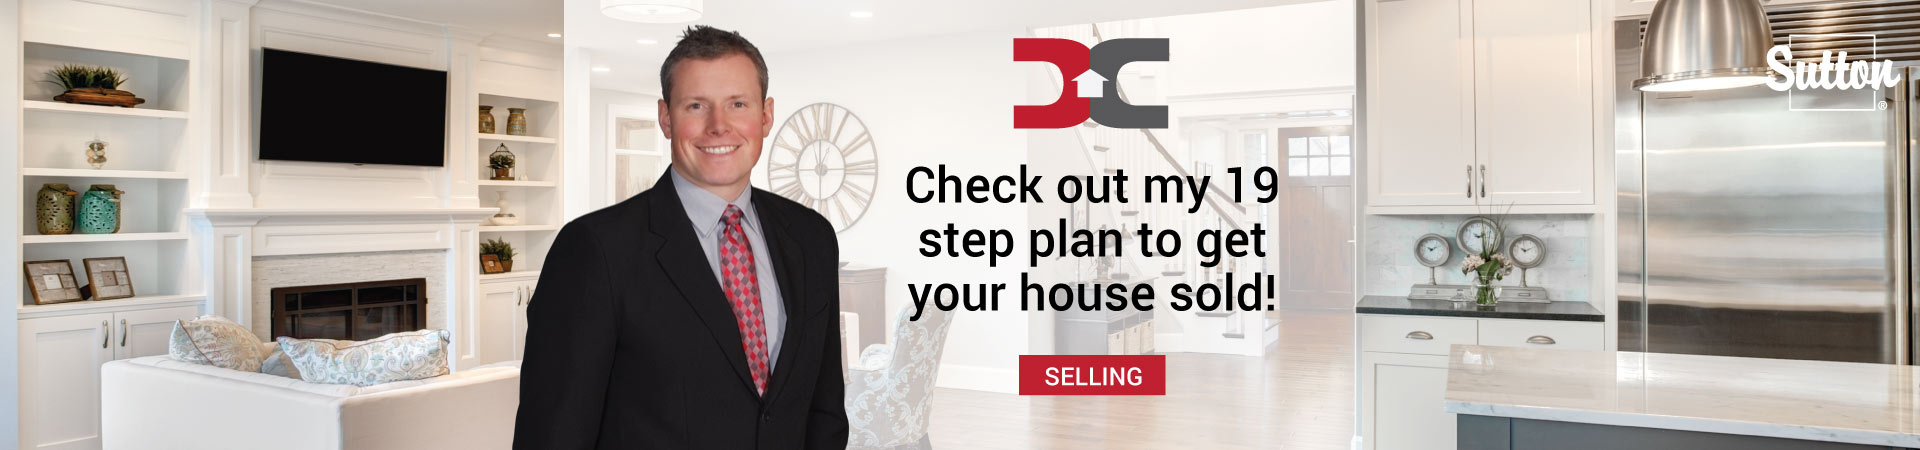 19 Step Home Selling Plan